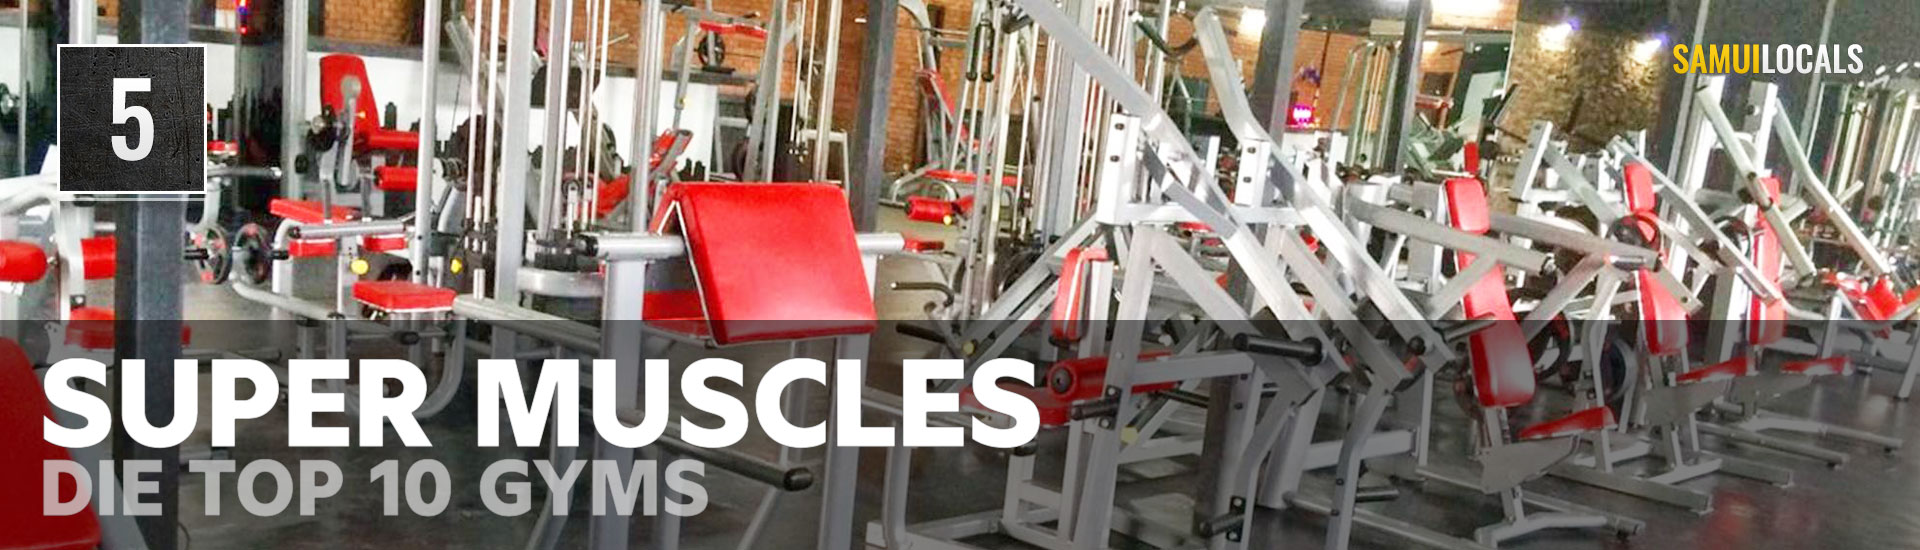 Top_10_gyms_super_muscles